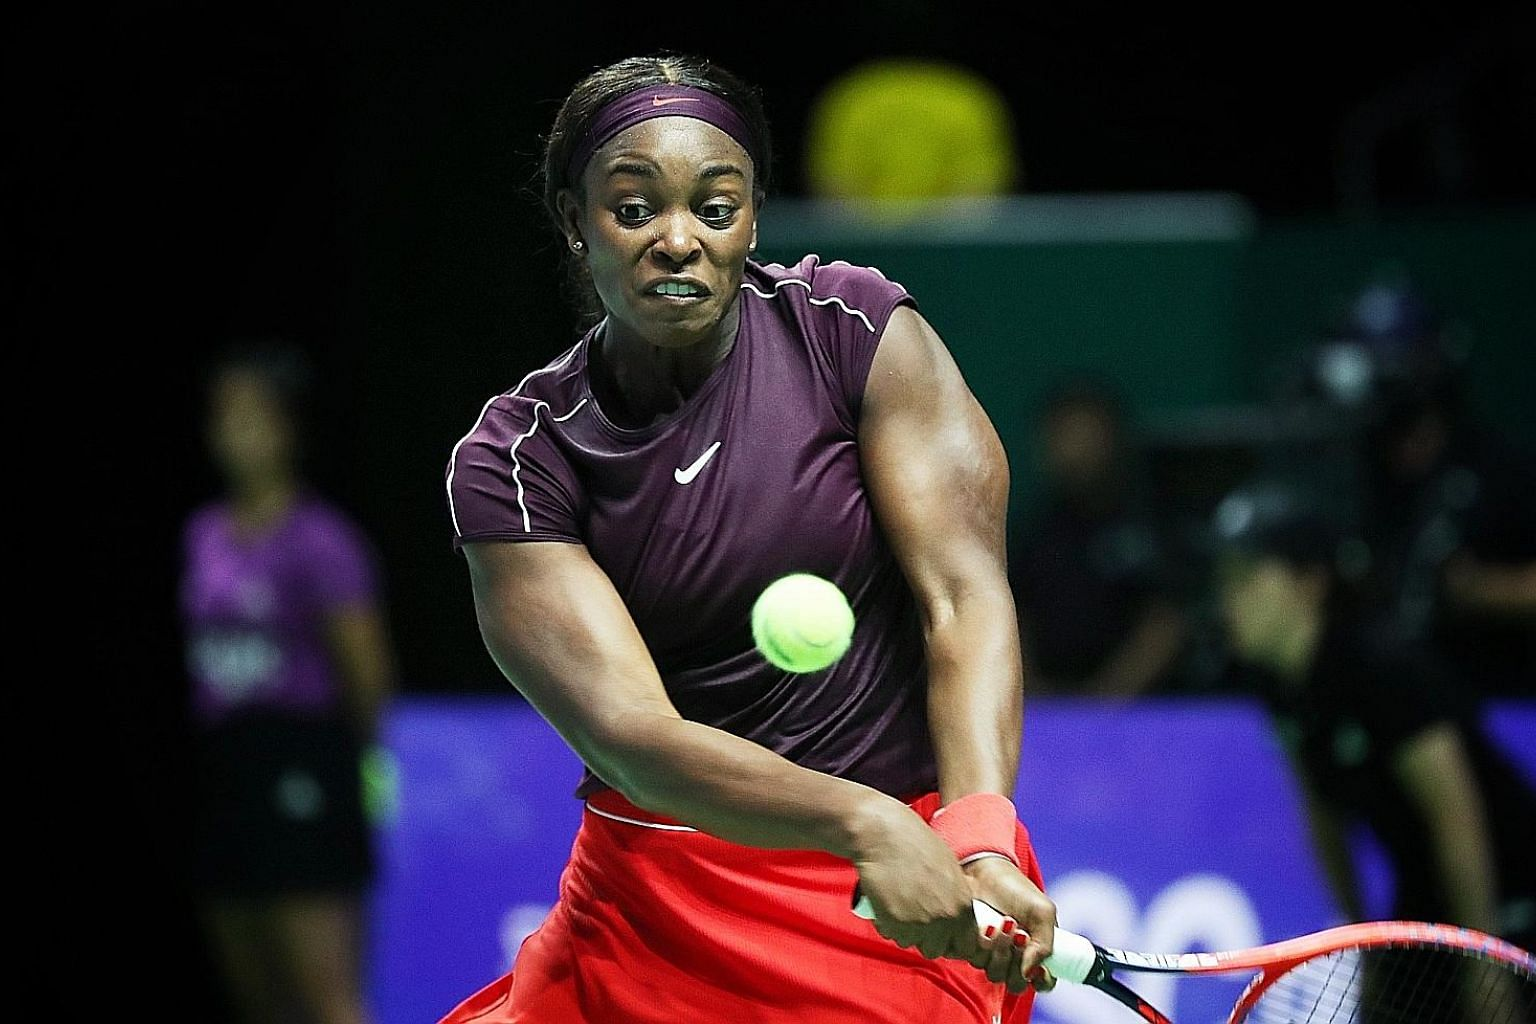 World No. 6 Sloane Stephens hitting a return to No. 4 Naomi Osaka in their opening Red Group match at the BNP Paribas WTA Finals Singapore presented by SC Global at the Indoor Stadium last night. The American won 7-5, 4-6, 6-1.